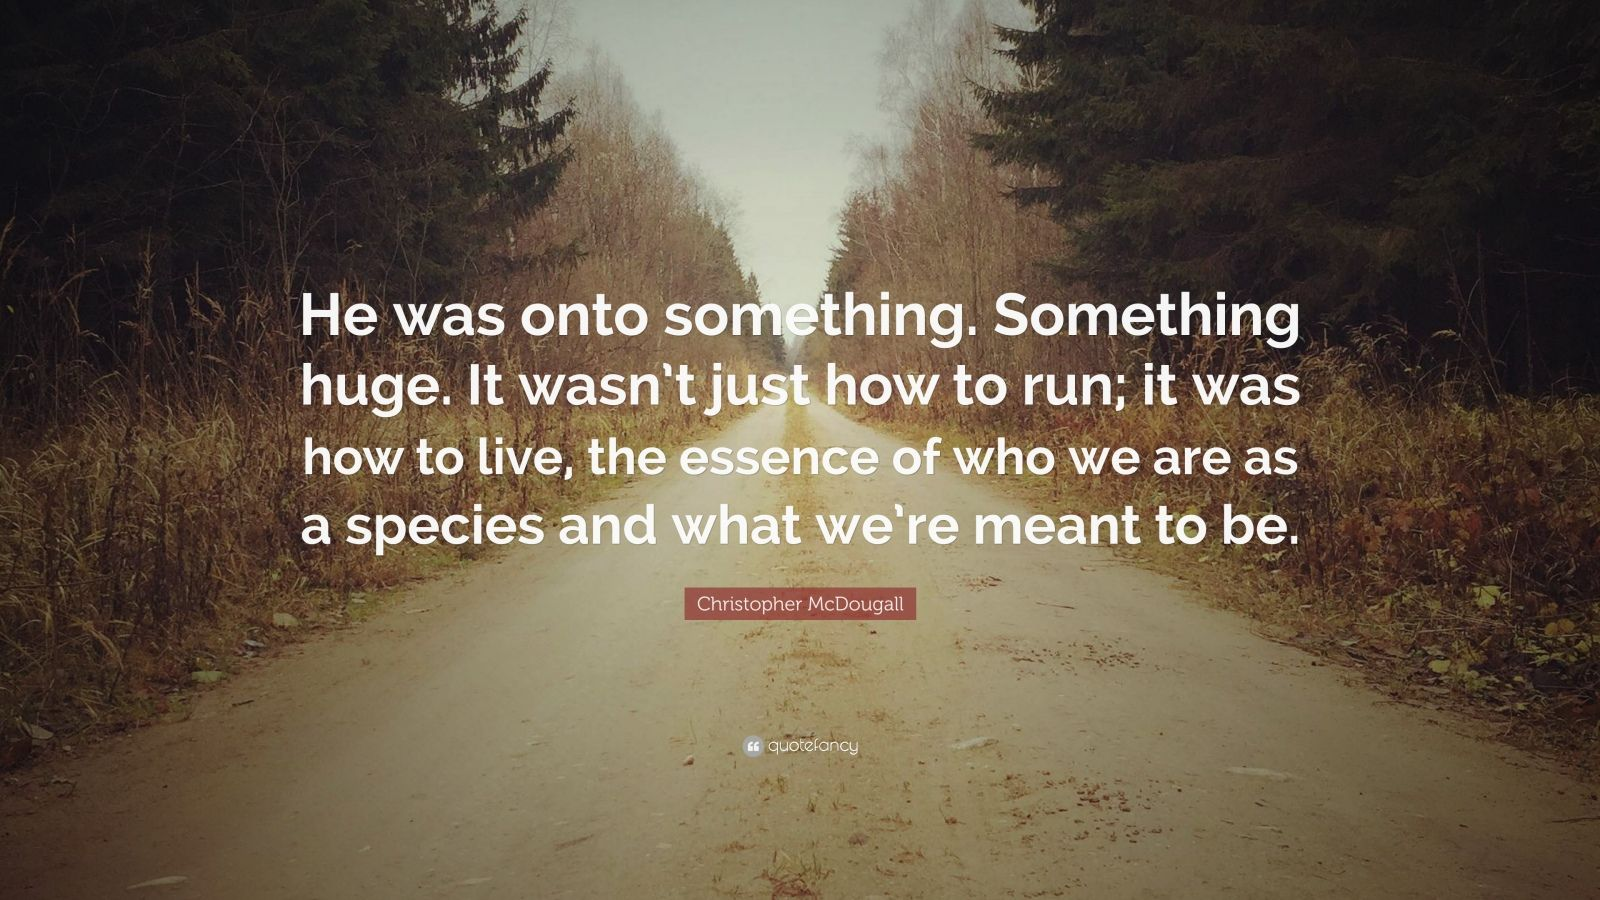 """Christopher McDougall Quote: """"He was onto something. Something huge. It wasn't just how to run; it was how to live, the essence of who we are as a species and what we're meant to be."""""""